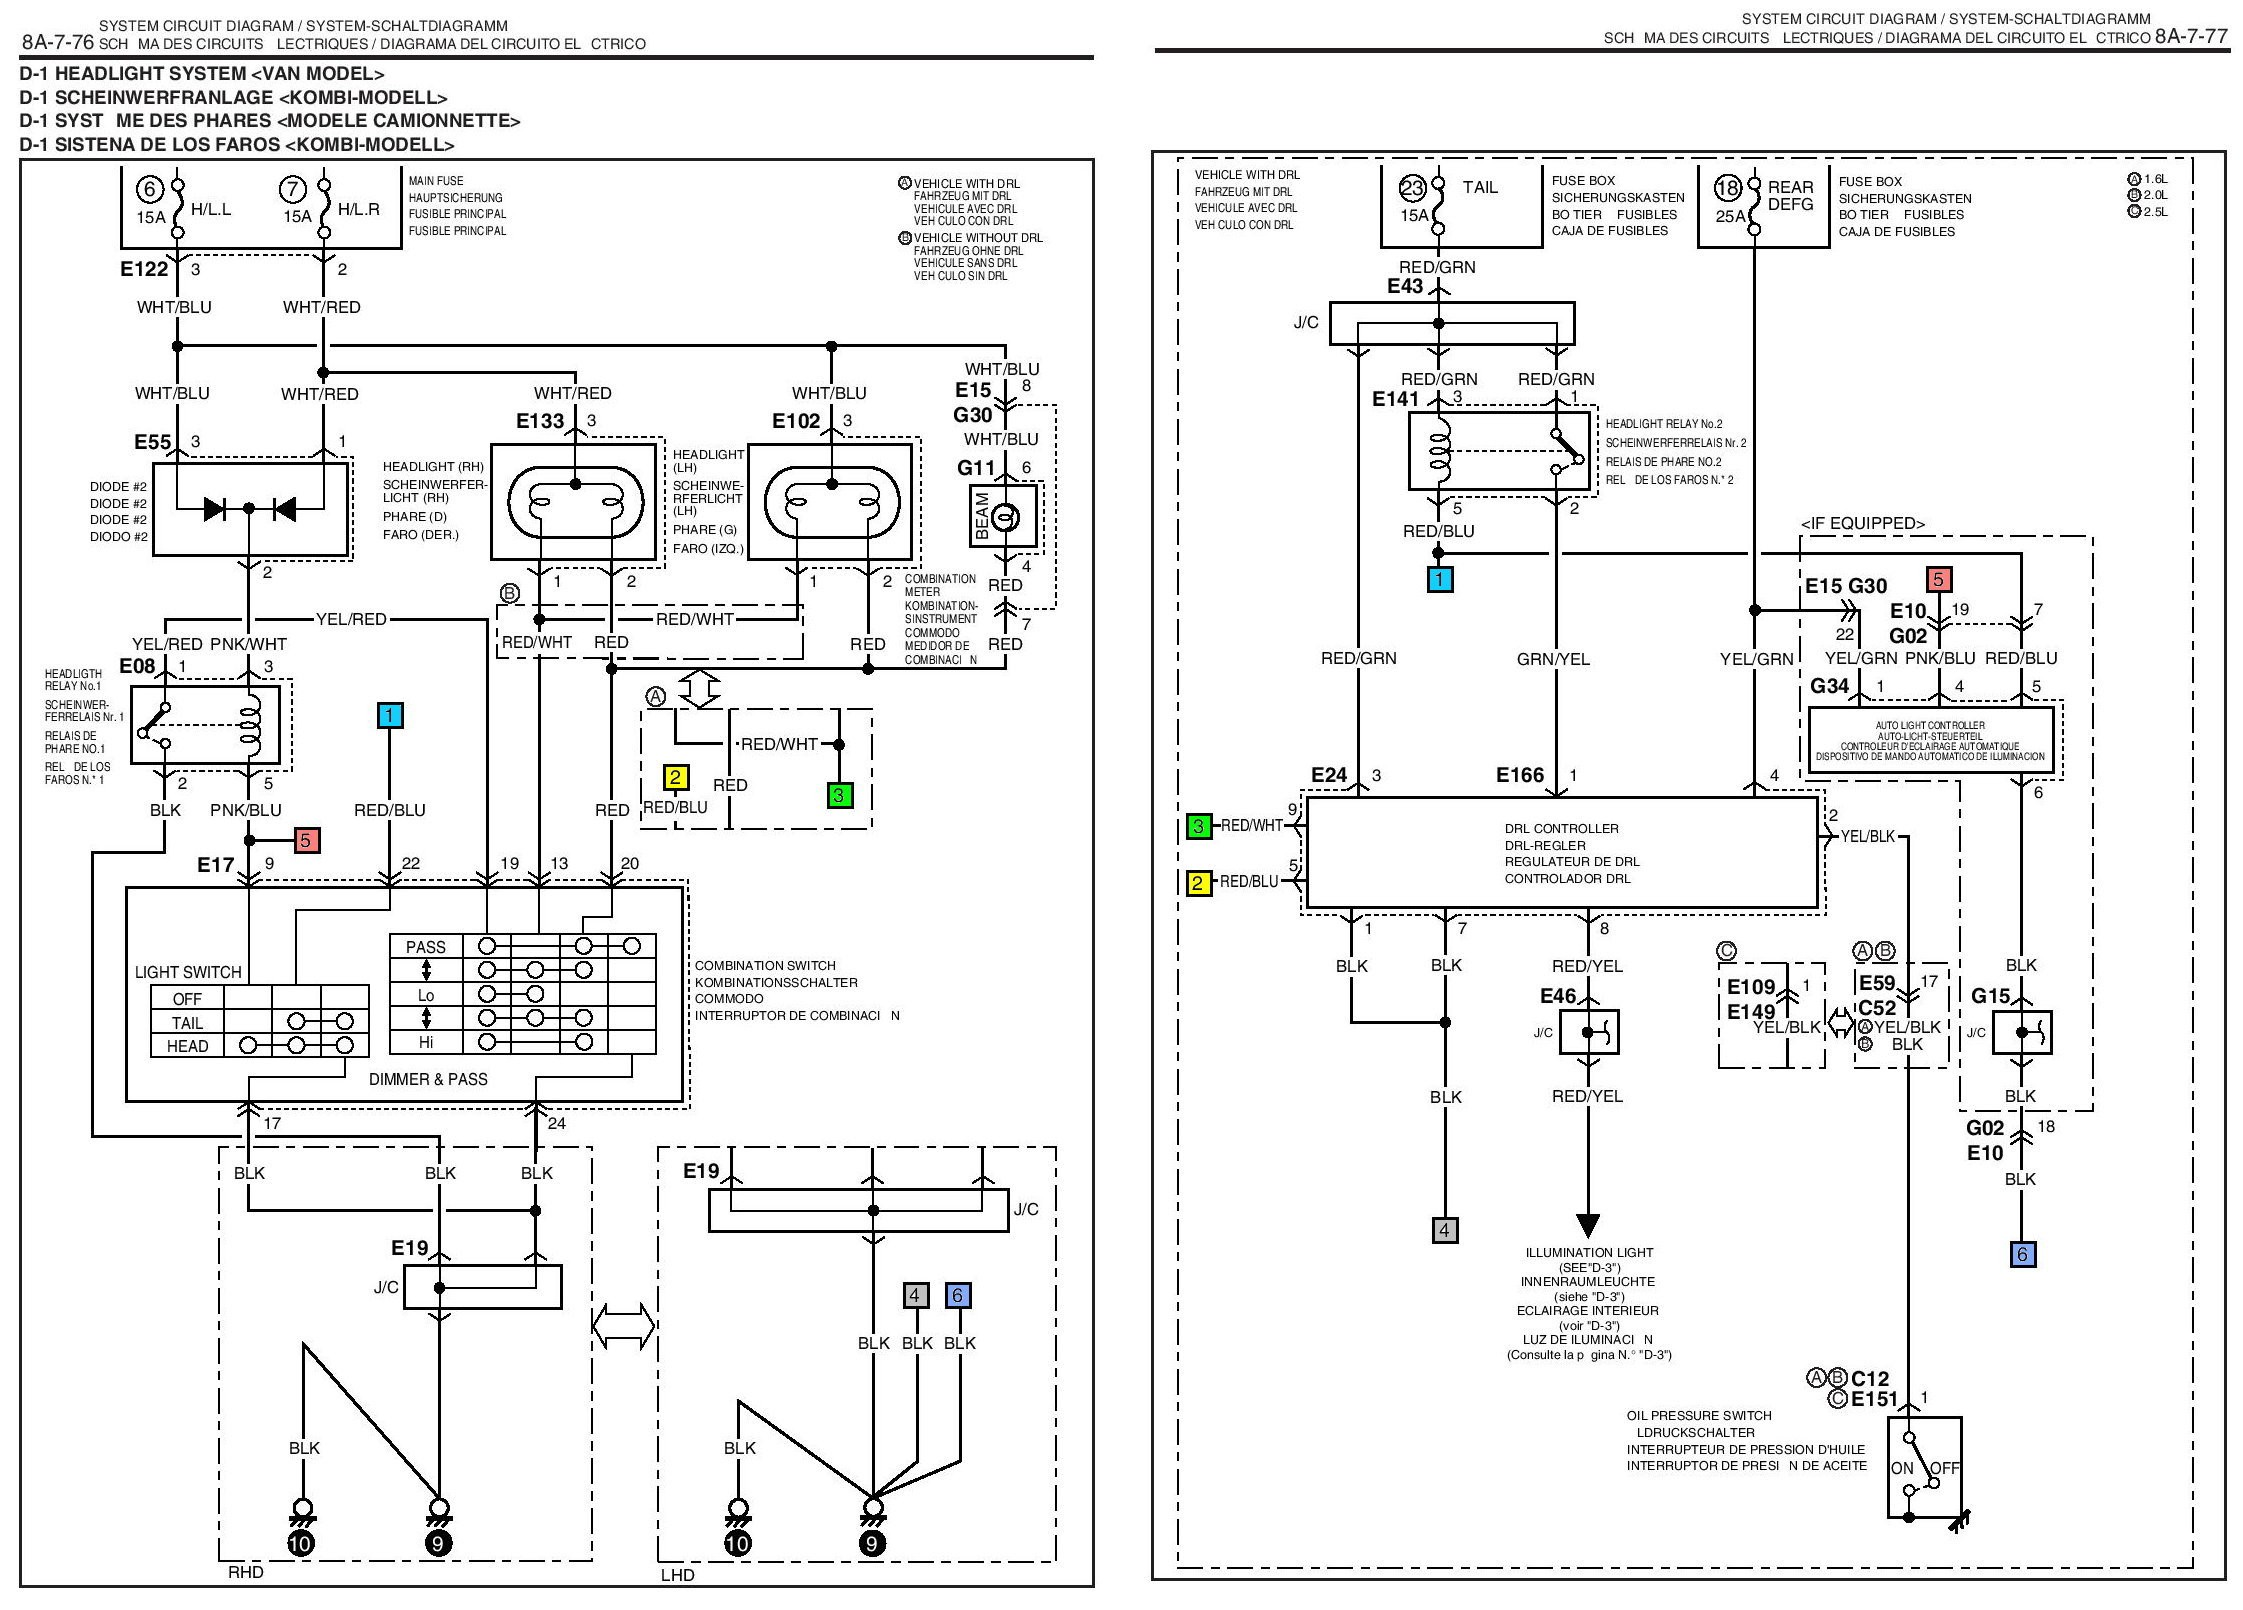 DIAGRAM] 2008 Suzuki Forenza Wiring Diagram FULL Version HD Quality Wiring  Diagram - MONEYDIAGRAM.CINEMABREVE.ITCinema Breve